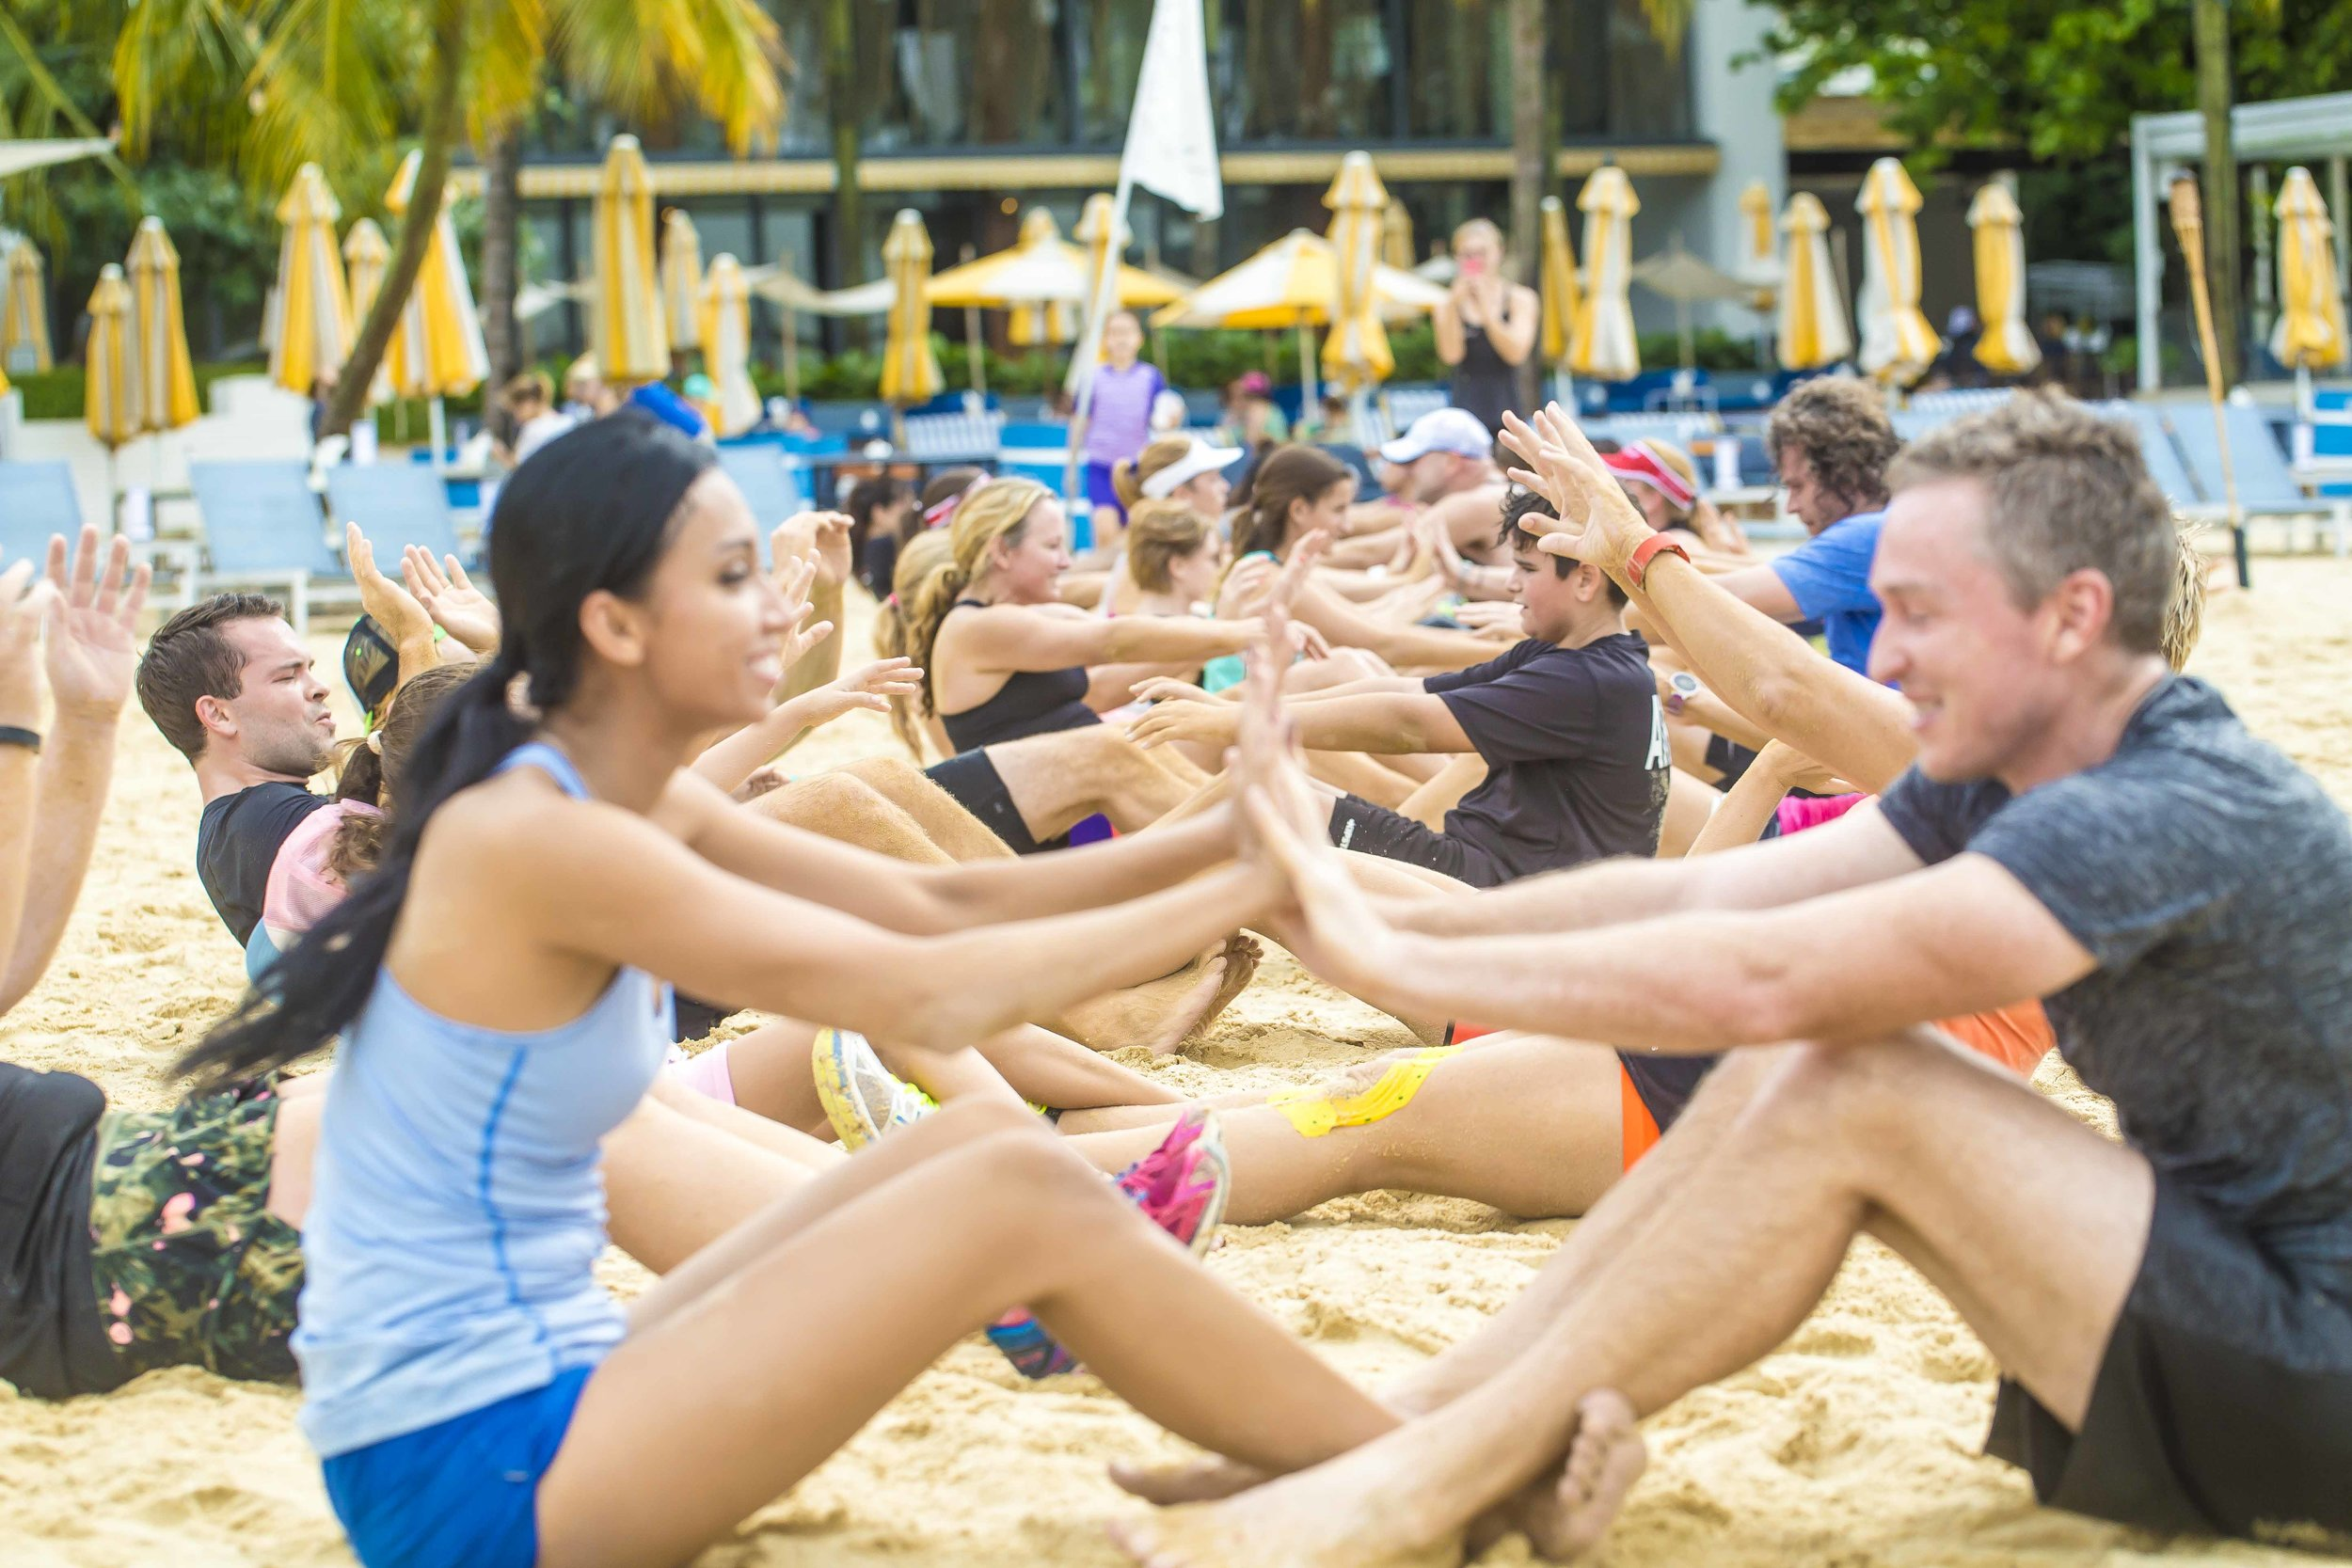 Tanjong Beach Bootcamp   Join the fitness revolution at Tanjong Beach every Sunday morning! Workout with a great view right on one of the most beautiful beaches on the island, and chill out at the beach bar after. Family, friends, and pets welcomed!    Read more →